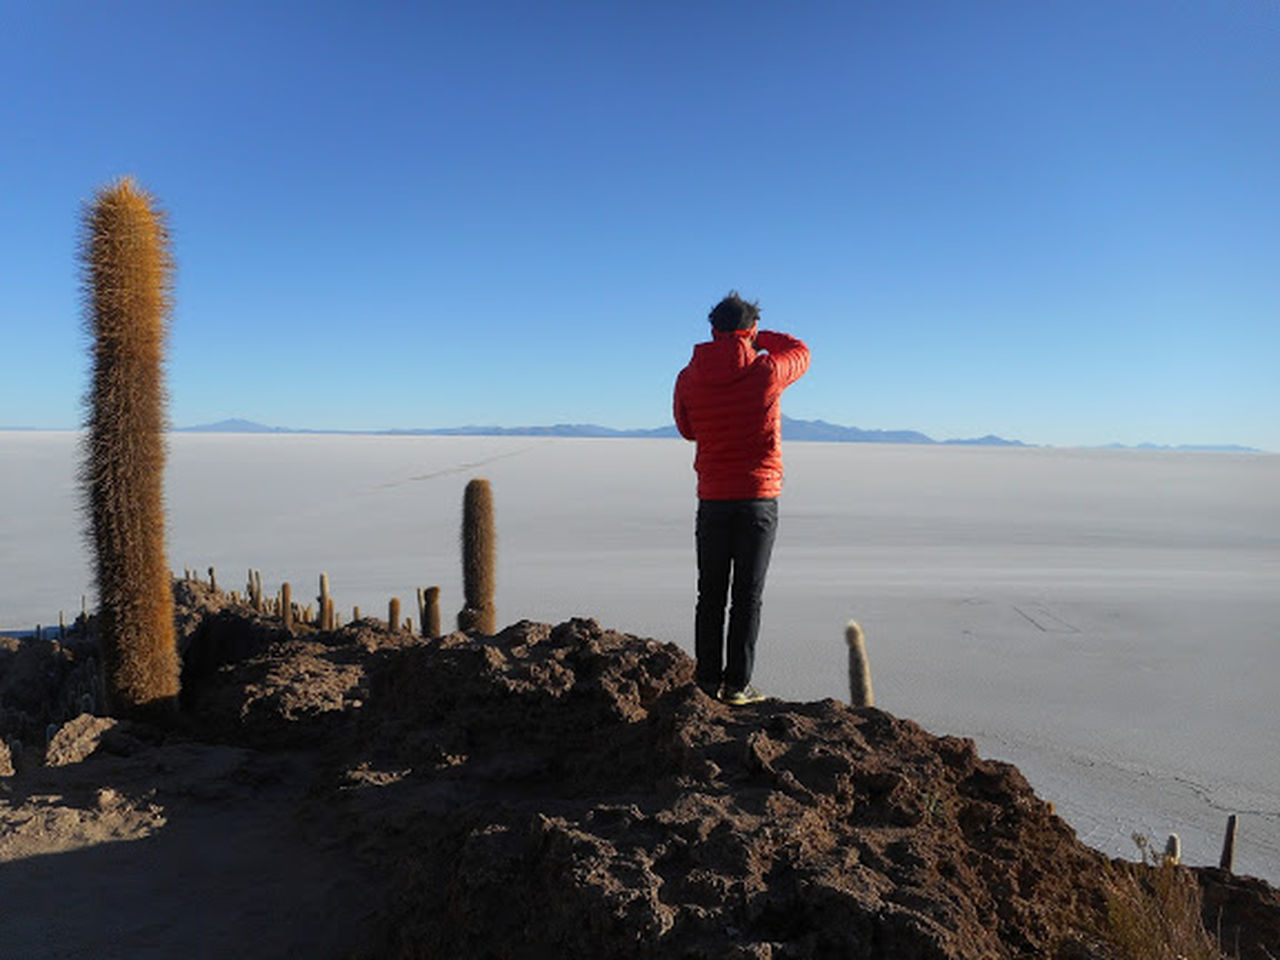 Adult Adults Only Beauty In Nature Blue Cactus Clear Sky Day Full Length Leisure Activity Nature One Man Only One Person Only Men Outdoors Panoramic People Photographer Rear View Rock - Object Salt Flat Scenics Sky Standing Travel Vacation